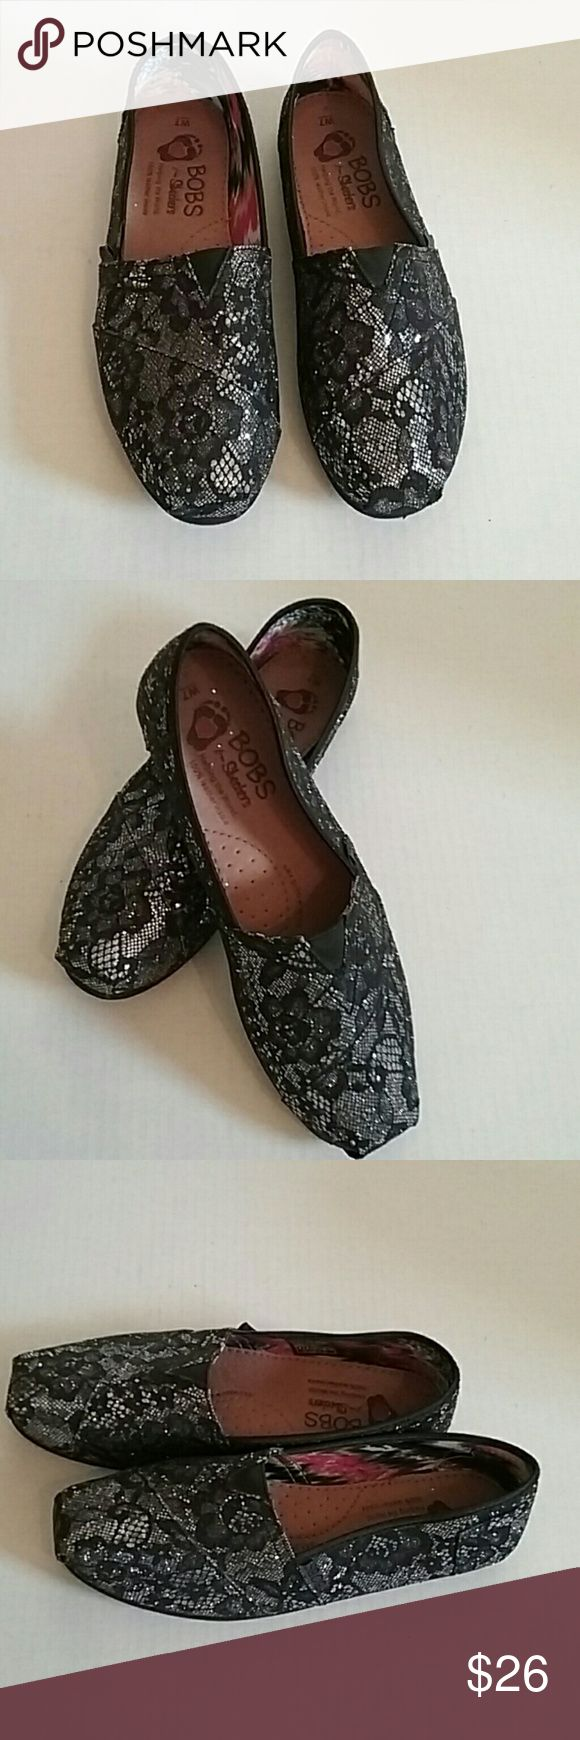 New Sz 7W Bobs black Sparkle Skechers flats A pair of Bobs Skechers black Sparkle flat slip-ons. They are size 7 in. They are in brand new condition Skechers Shoes Flats & Loafers